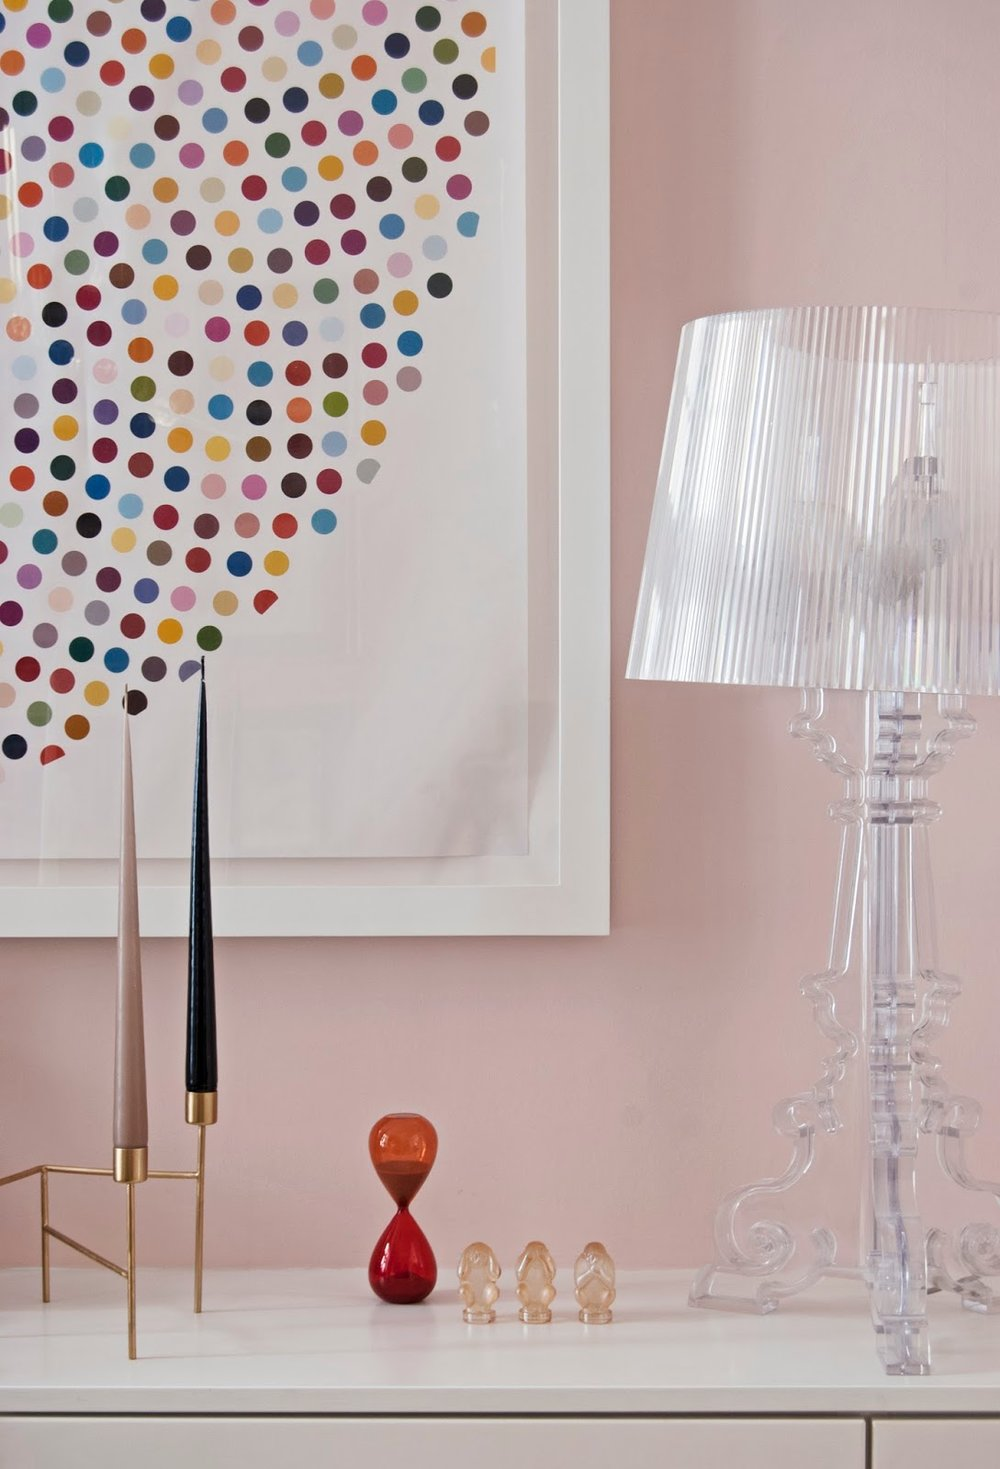 Amara Shoppable Home Inspiration Pages - French For Pineapple Blog - sideboard with damien hirst valium print, candle holder, hay egg timer, see no evil, hear no evil, speak no evil crystal monkeys lalique.